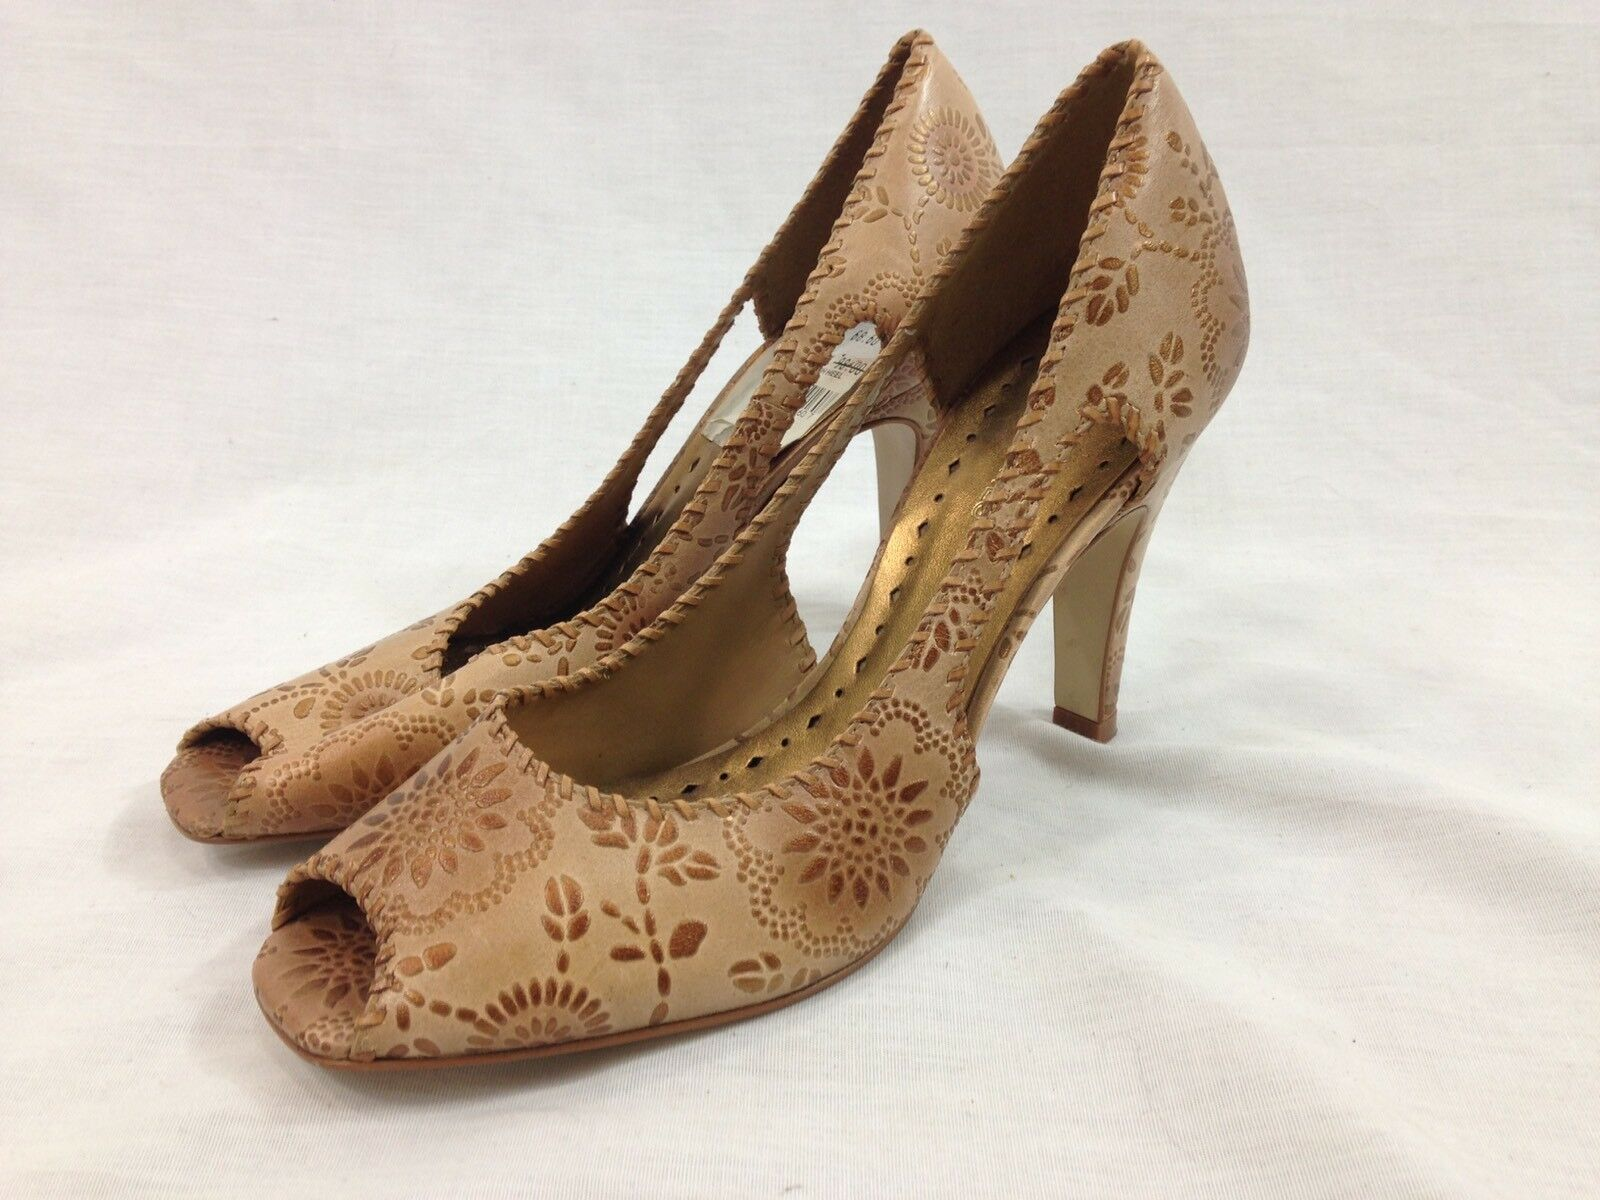 BCBGirls Shoes Womens 7.5 ELYAS Brown High Heel Open Toe Slip On Floral Print